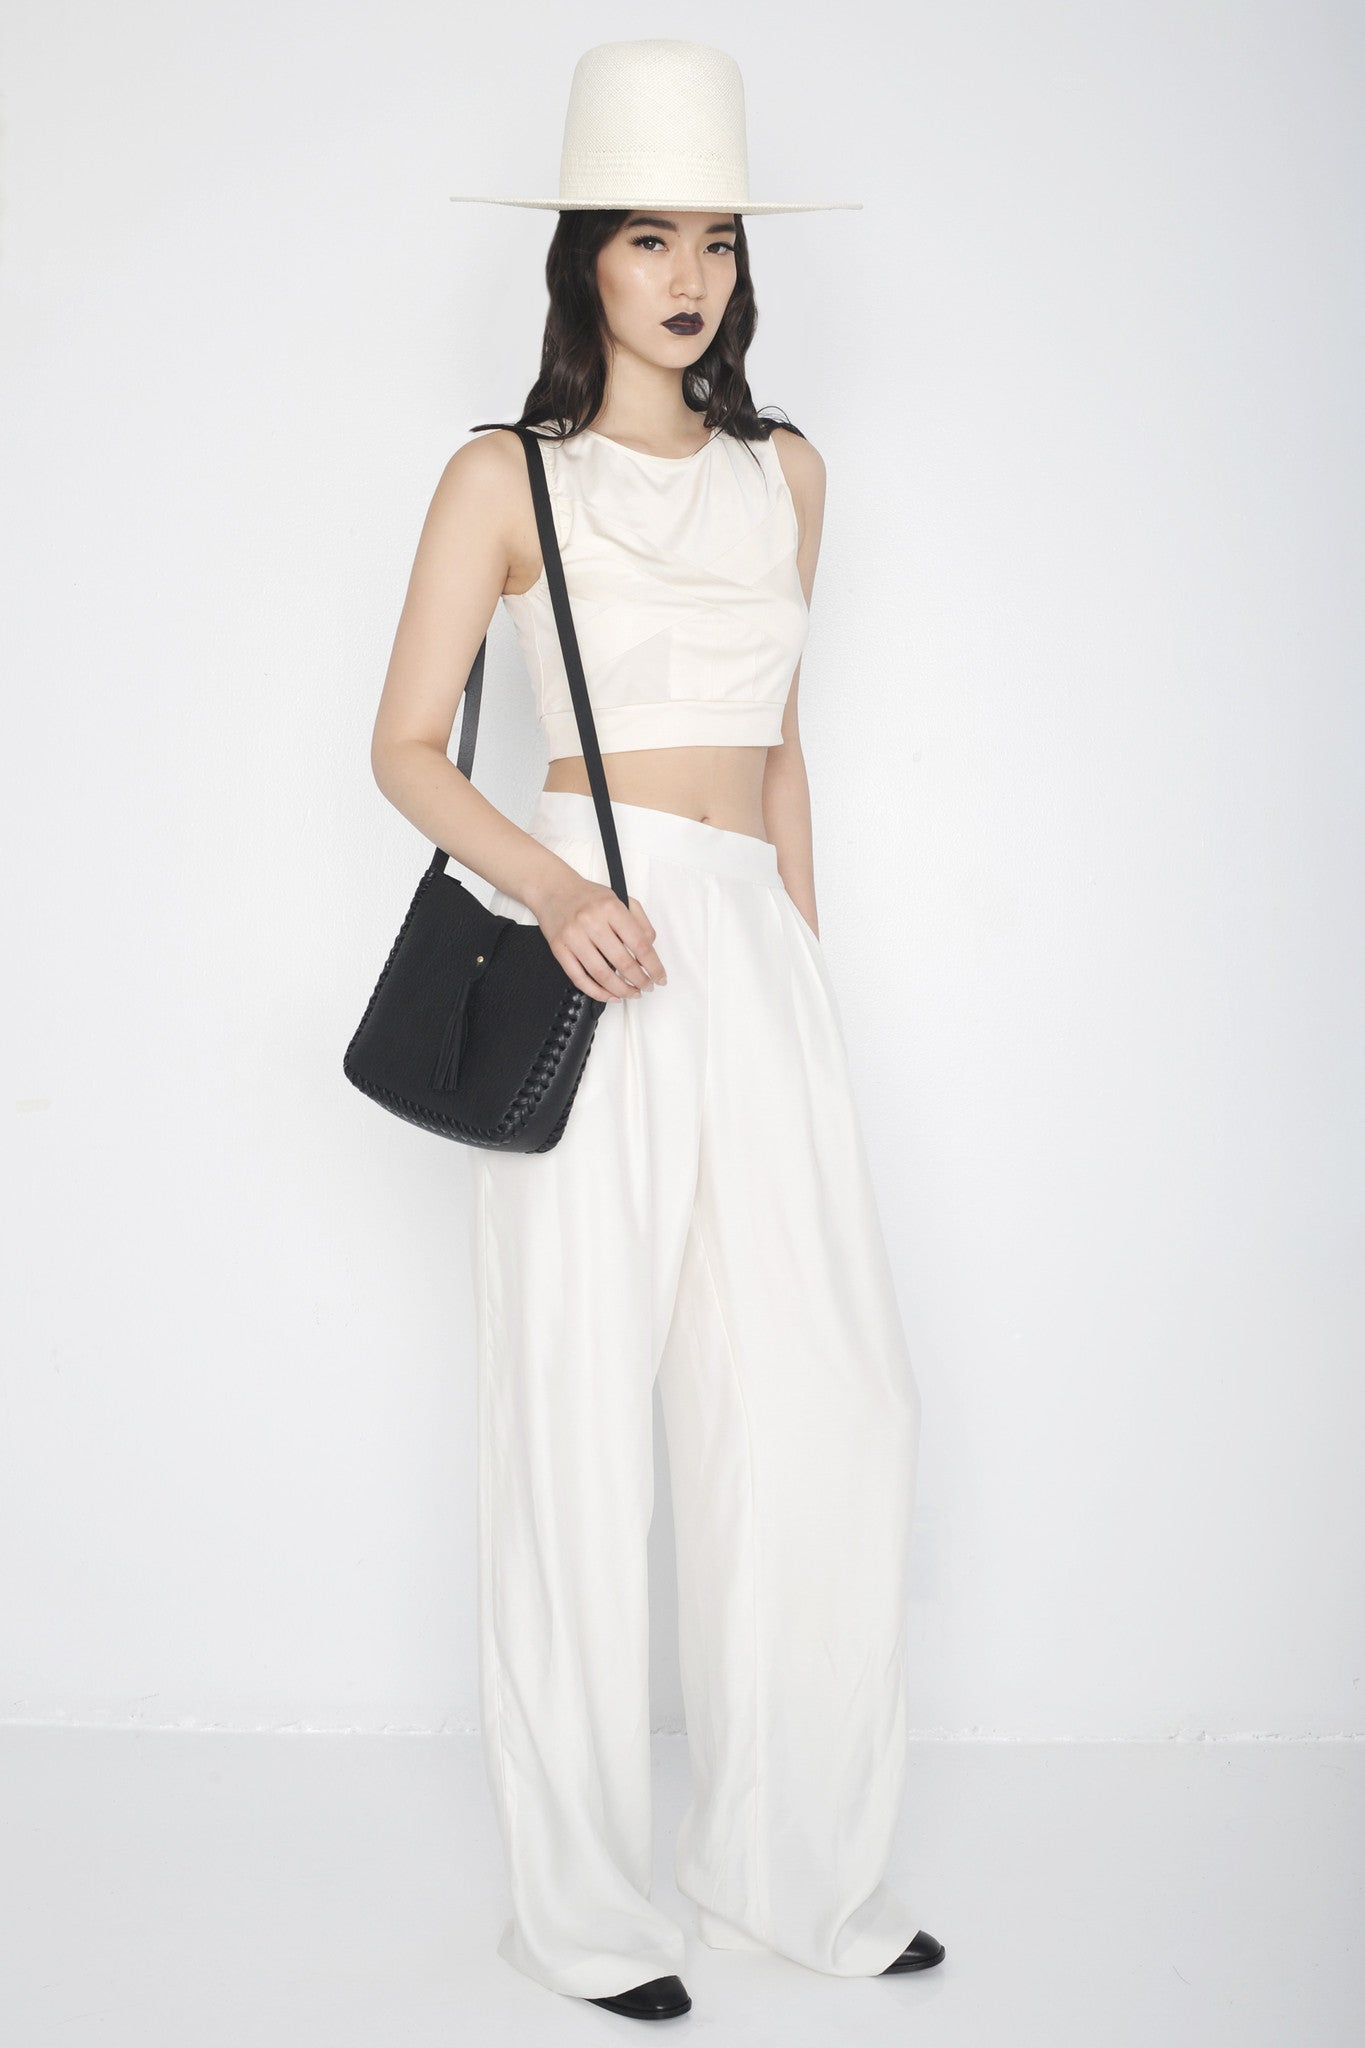 Mona IMG Model Wendy Nichol Clothing Designer Ready to Wear Fashion Runway show SS16 Guardians of Light High Noon Silk Mesh Cross Crop Top Sleeveless Cream White Silk Pleated Wide Leg Pants High Waisted Handmade in NYC  Custom Tailoring Made to Measure Order